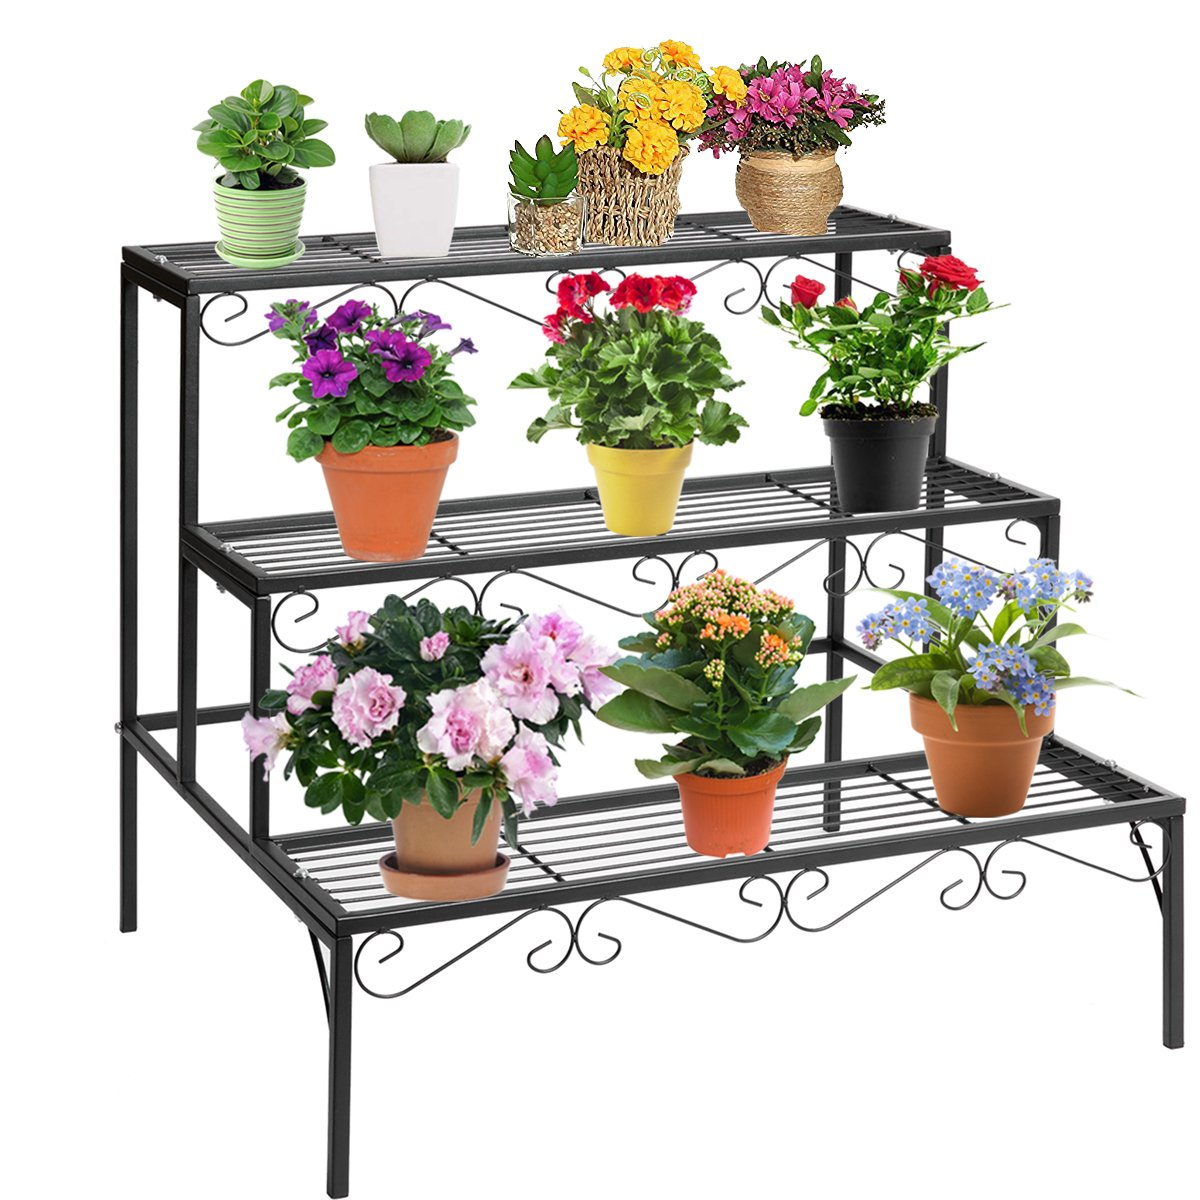 DOEWORKS 3 Tier Stair Style Metal Plant Stand, Garden Shelf for Large Flower Pot Display Rack Indoor Outdoor, Black by DOEWORKS